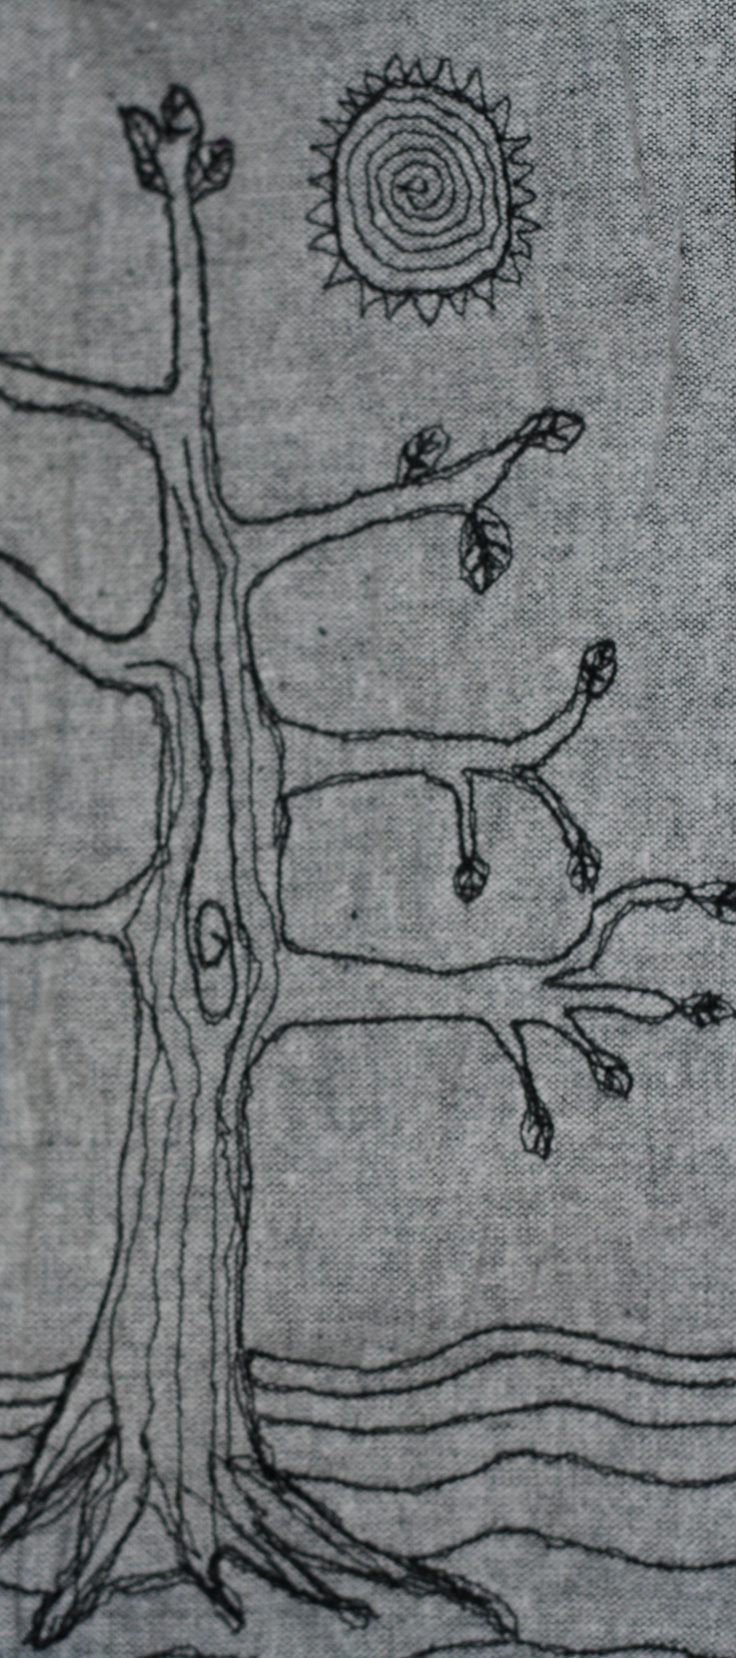 The lonely tree in freehand machine embroidery.